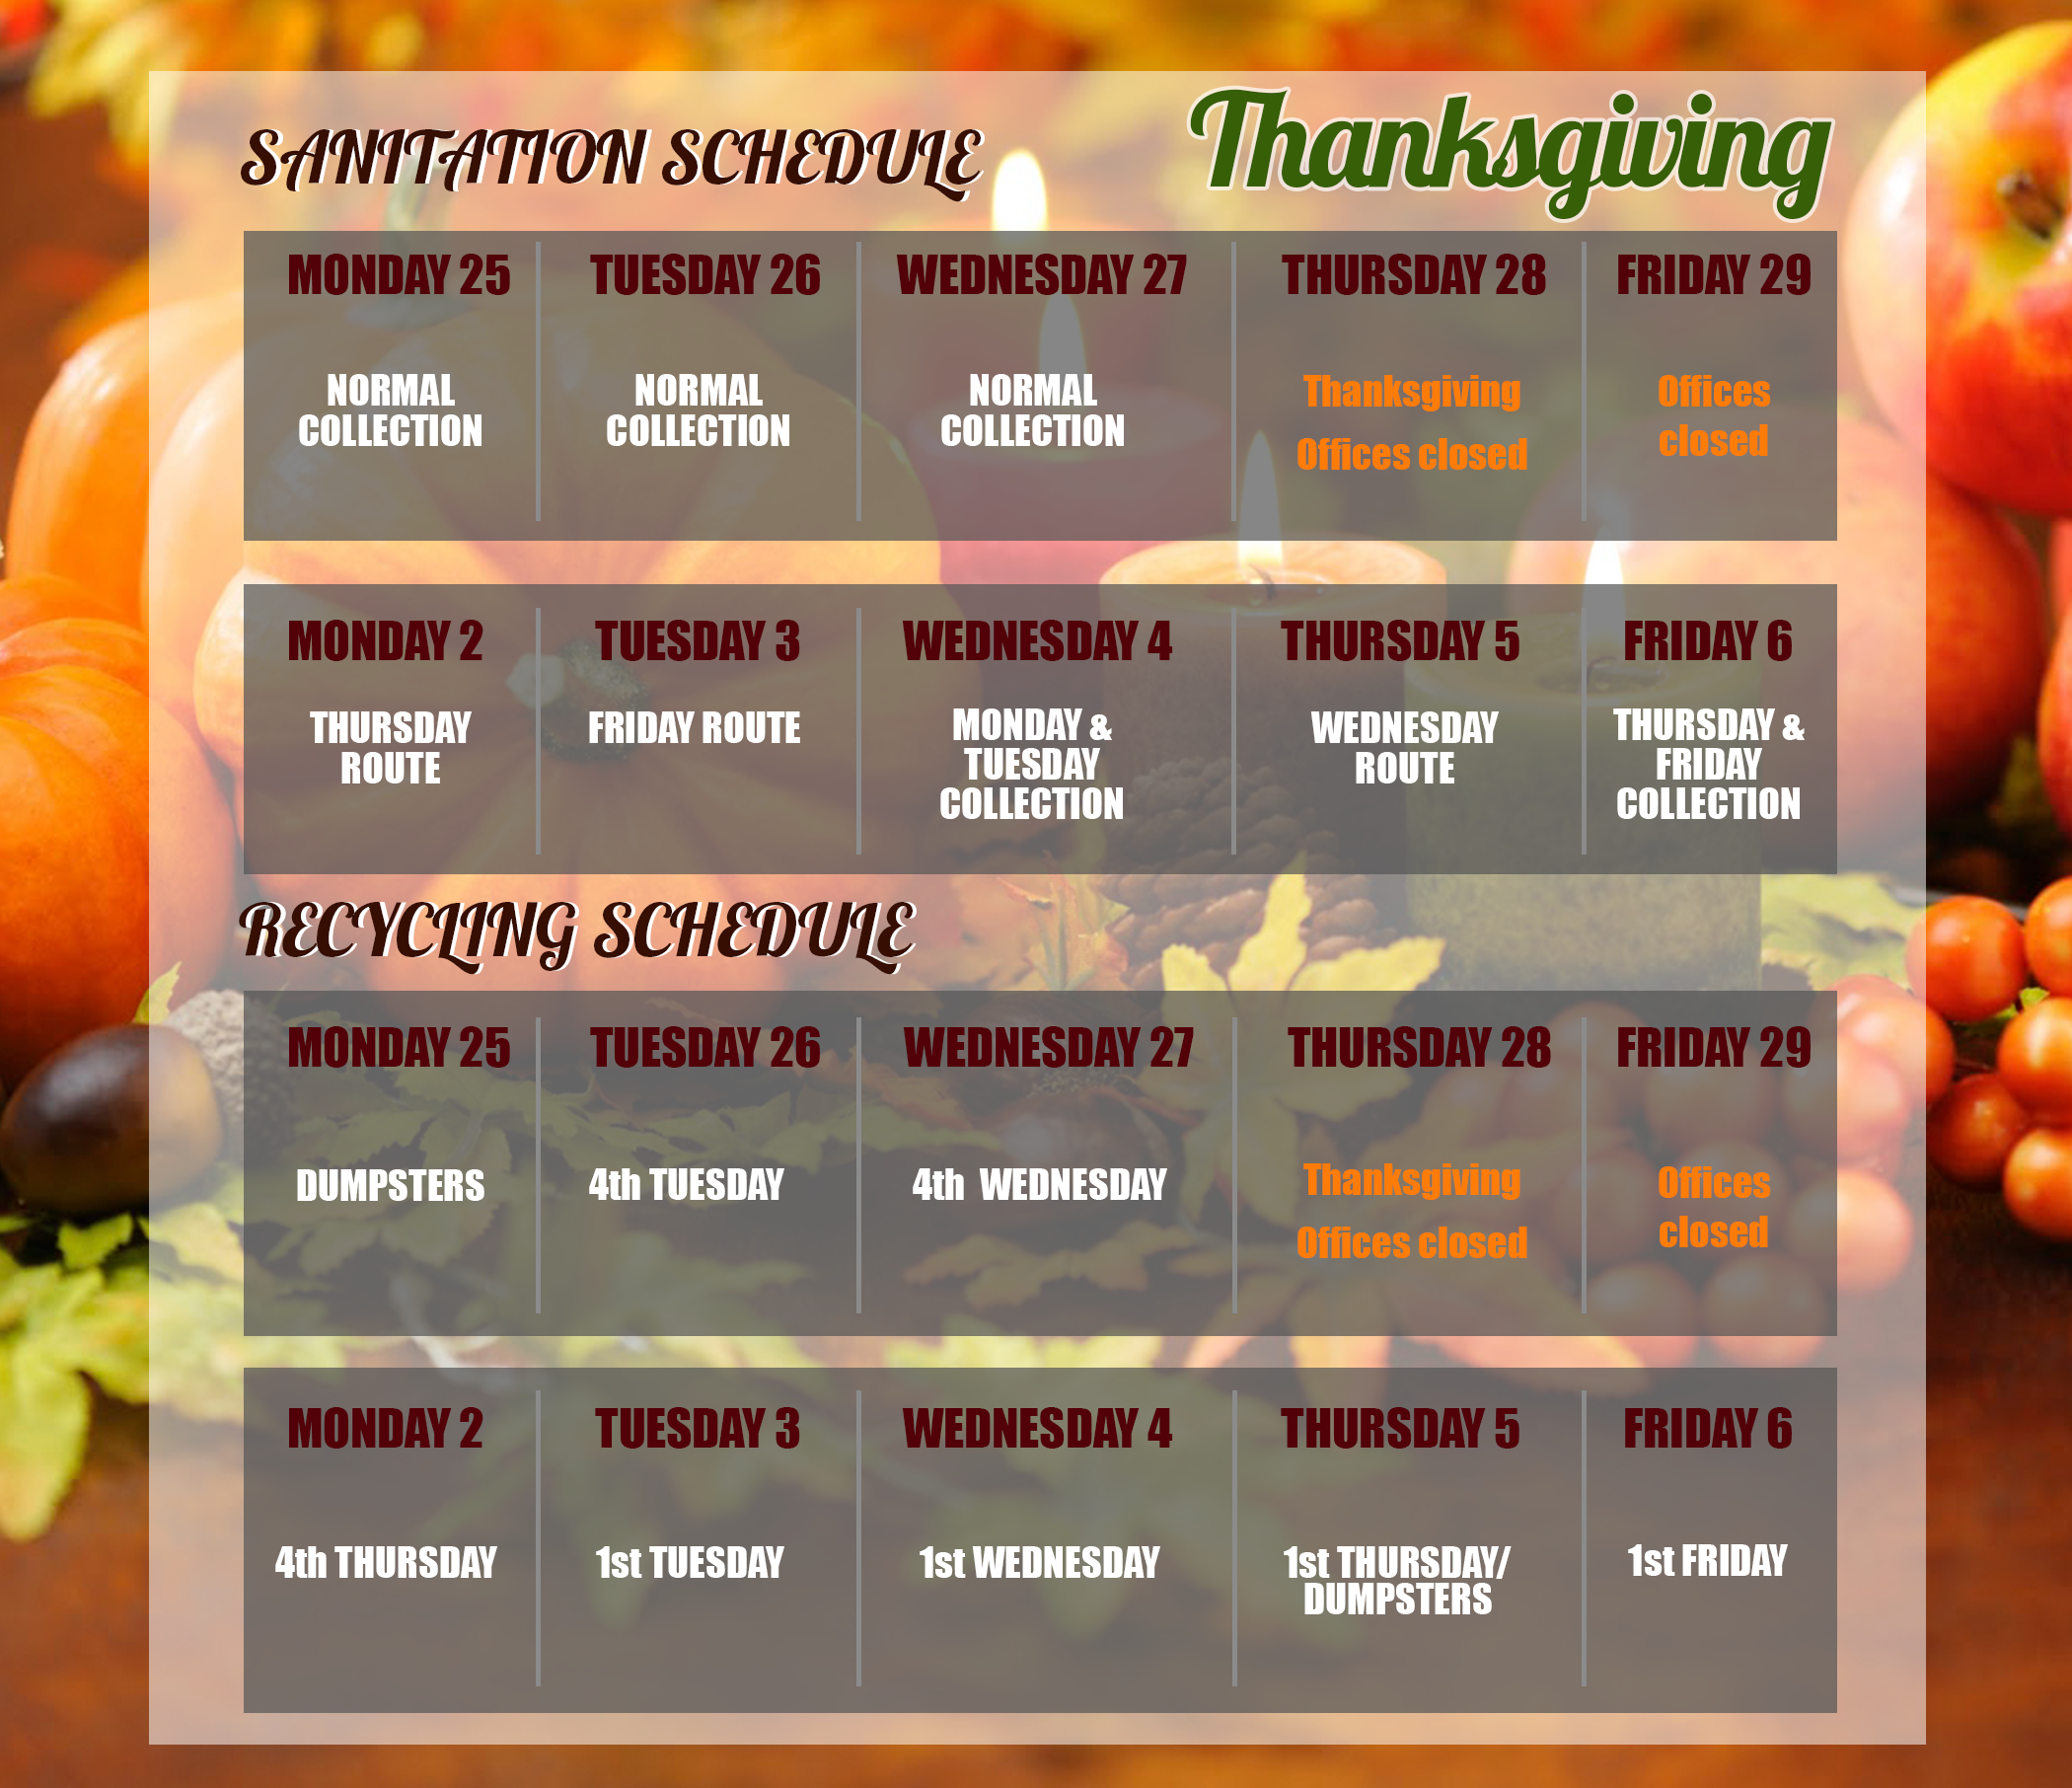 Sanitation Schedule for Thanksgiving 2019